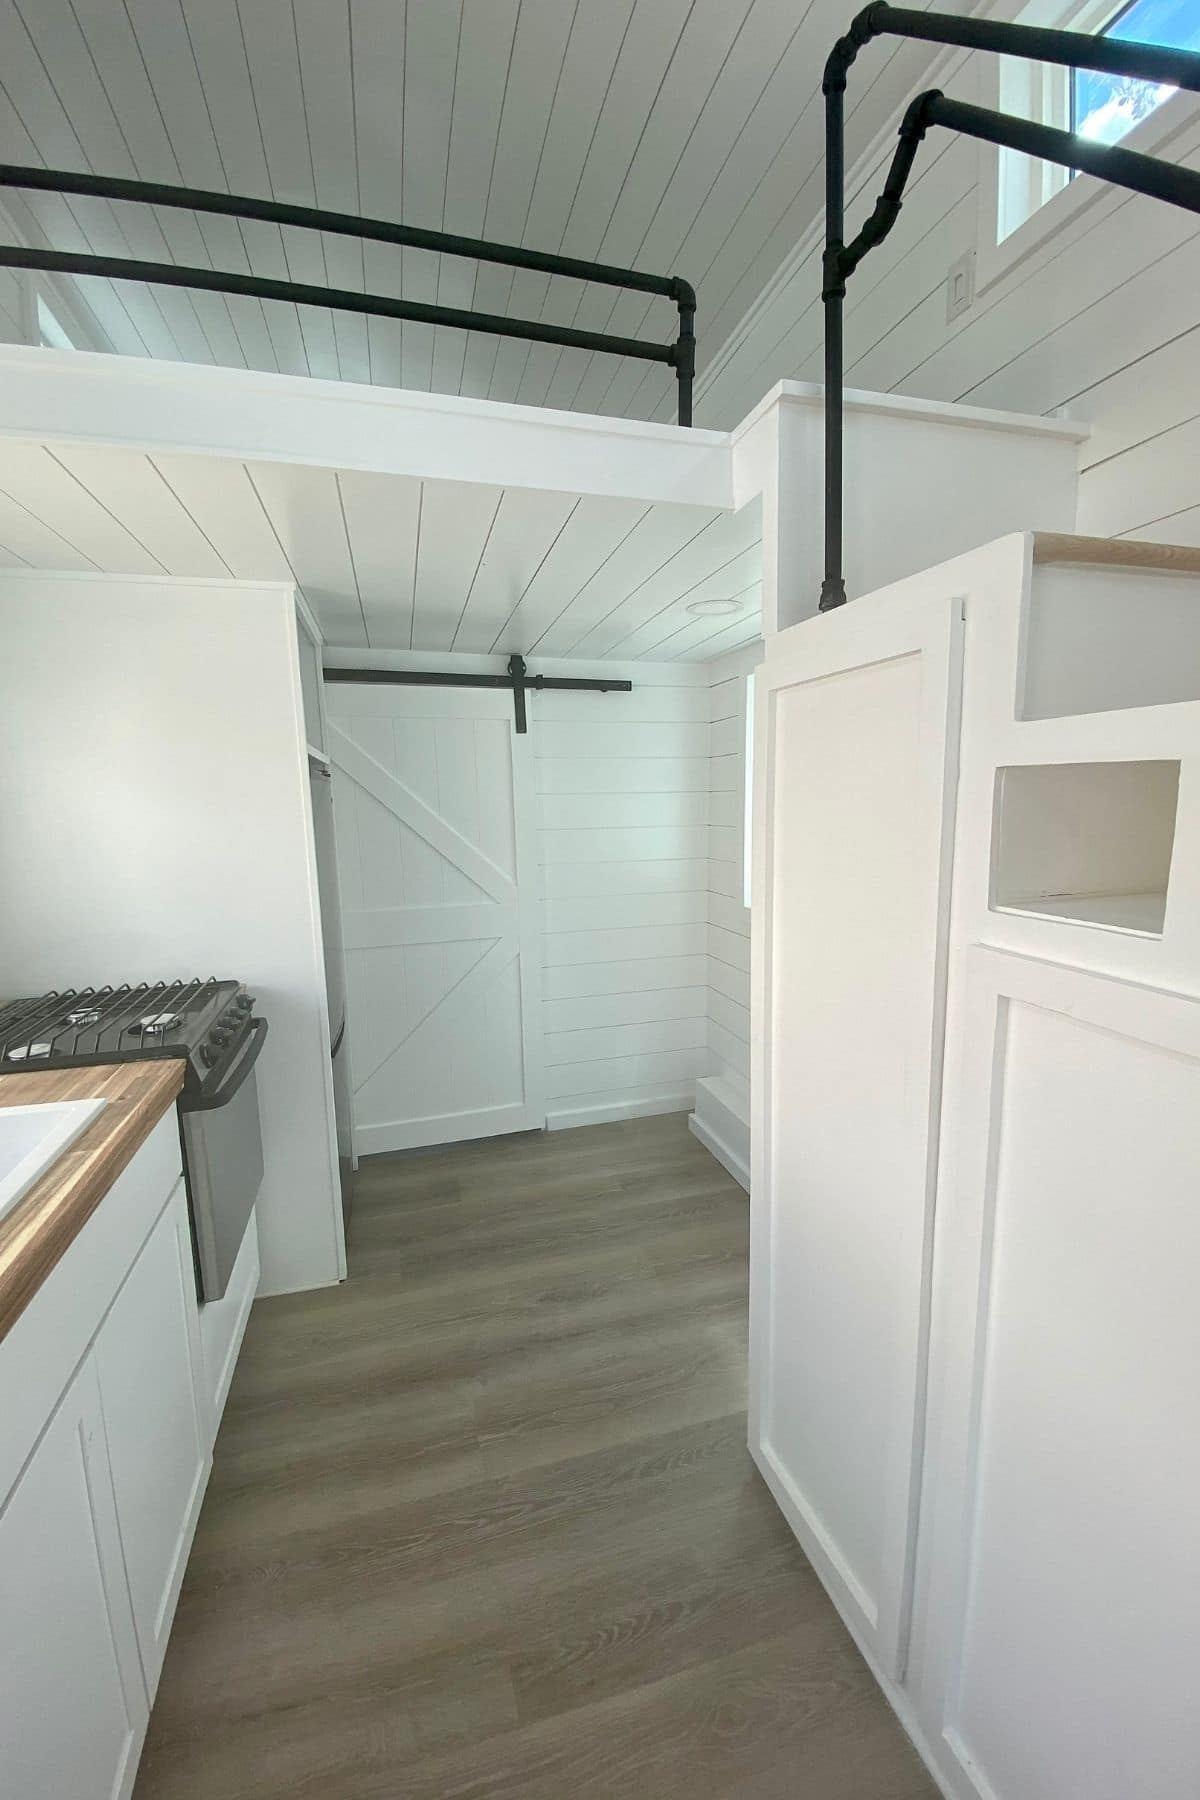 View into bathroom from kitchen with white cabinets under stairs to left